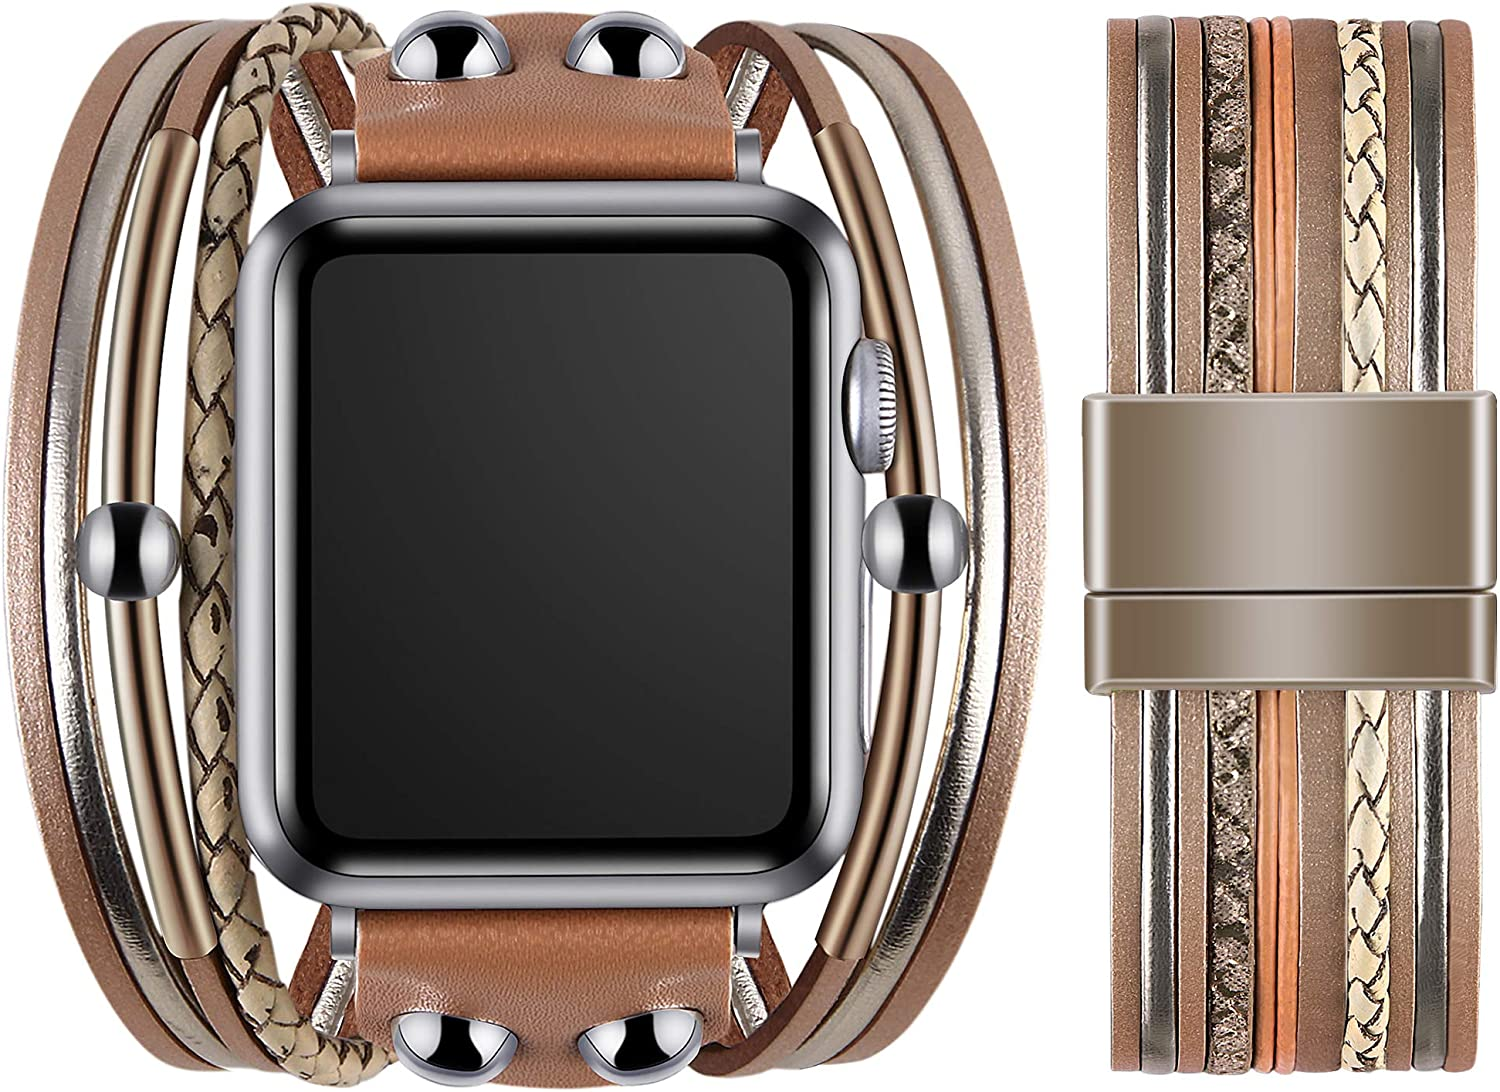 VIQIV Multi-Layer Wrap Bracelet Band Compatible with Apple Watch 38mm 40mm 42mm 44mm Sports Watches for Men Women, Magnetic Buckle Cuff Bracelet Jewelry Wrist Strap for iWatch Series SE 6/5/4/3/2/1